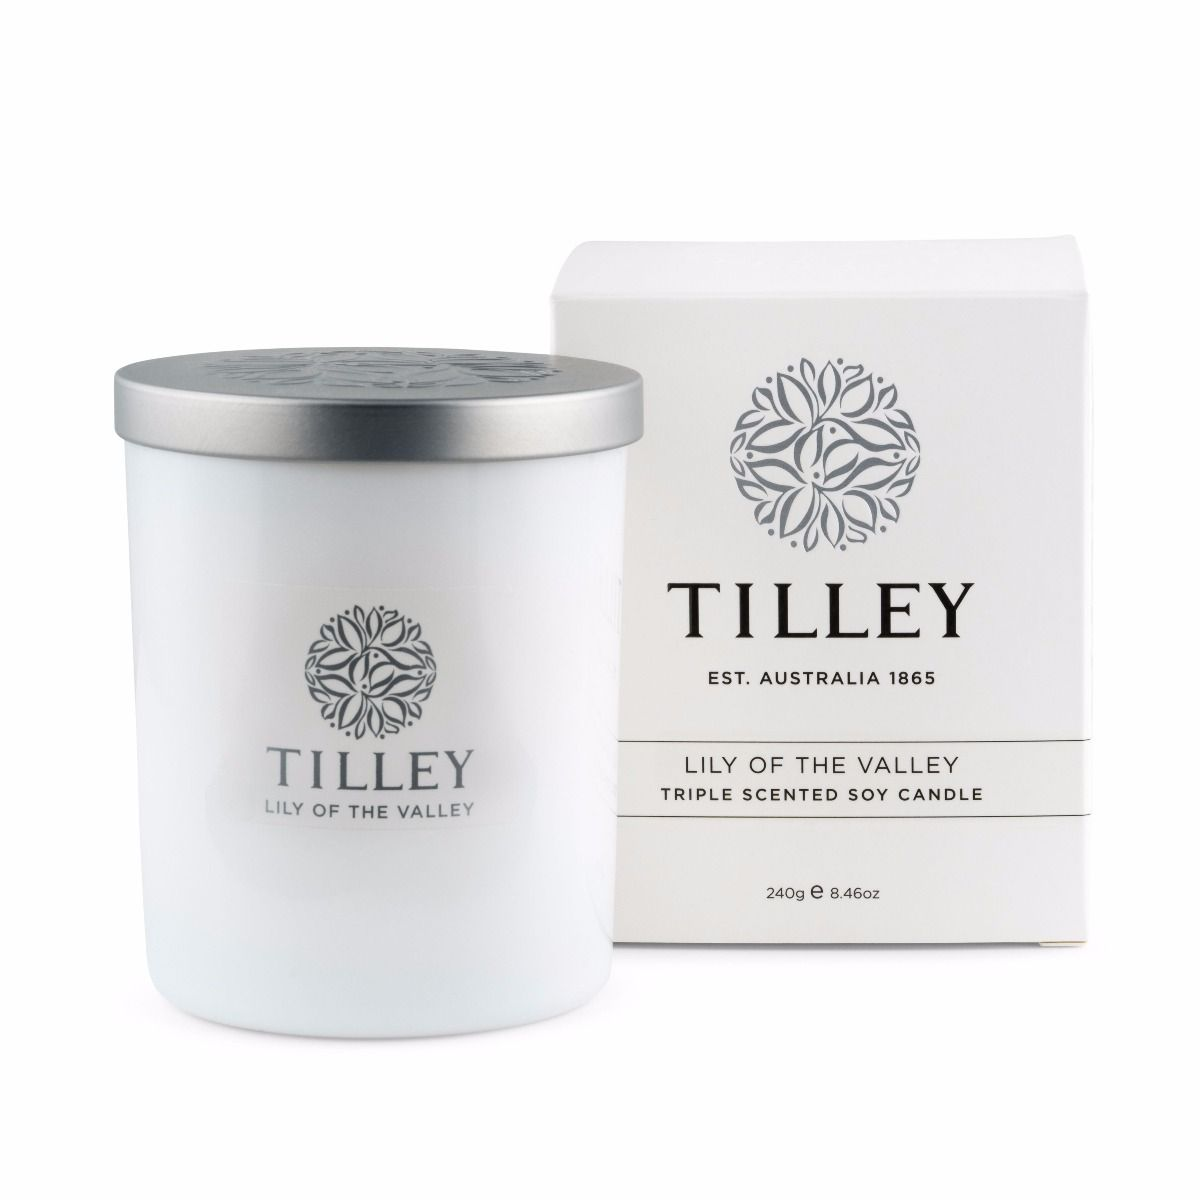 SOY CANDLE LILY OF THE VALLEY 45 HOUR